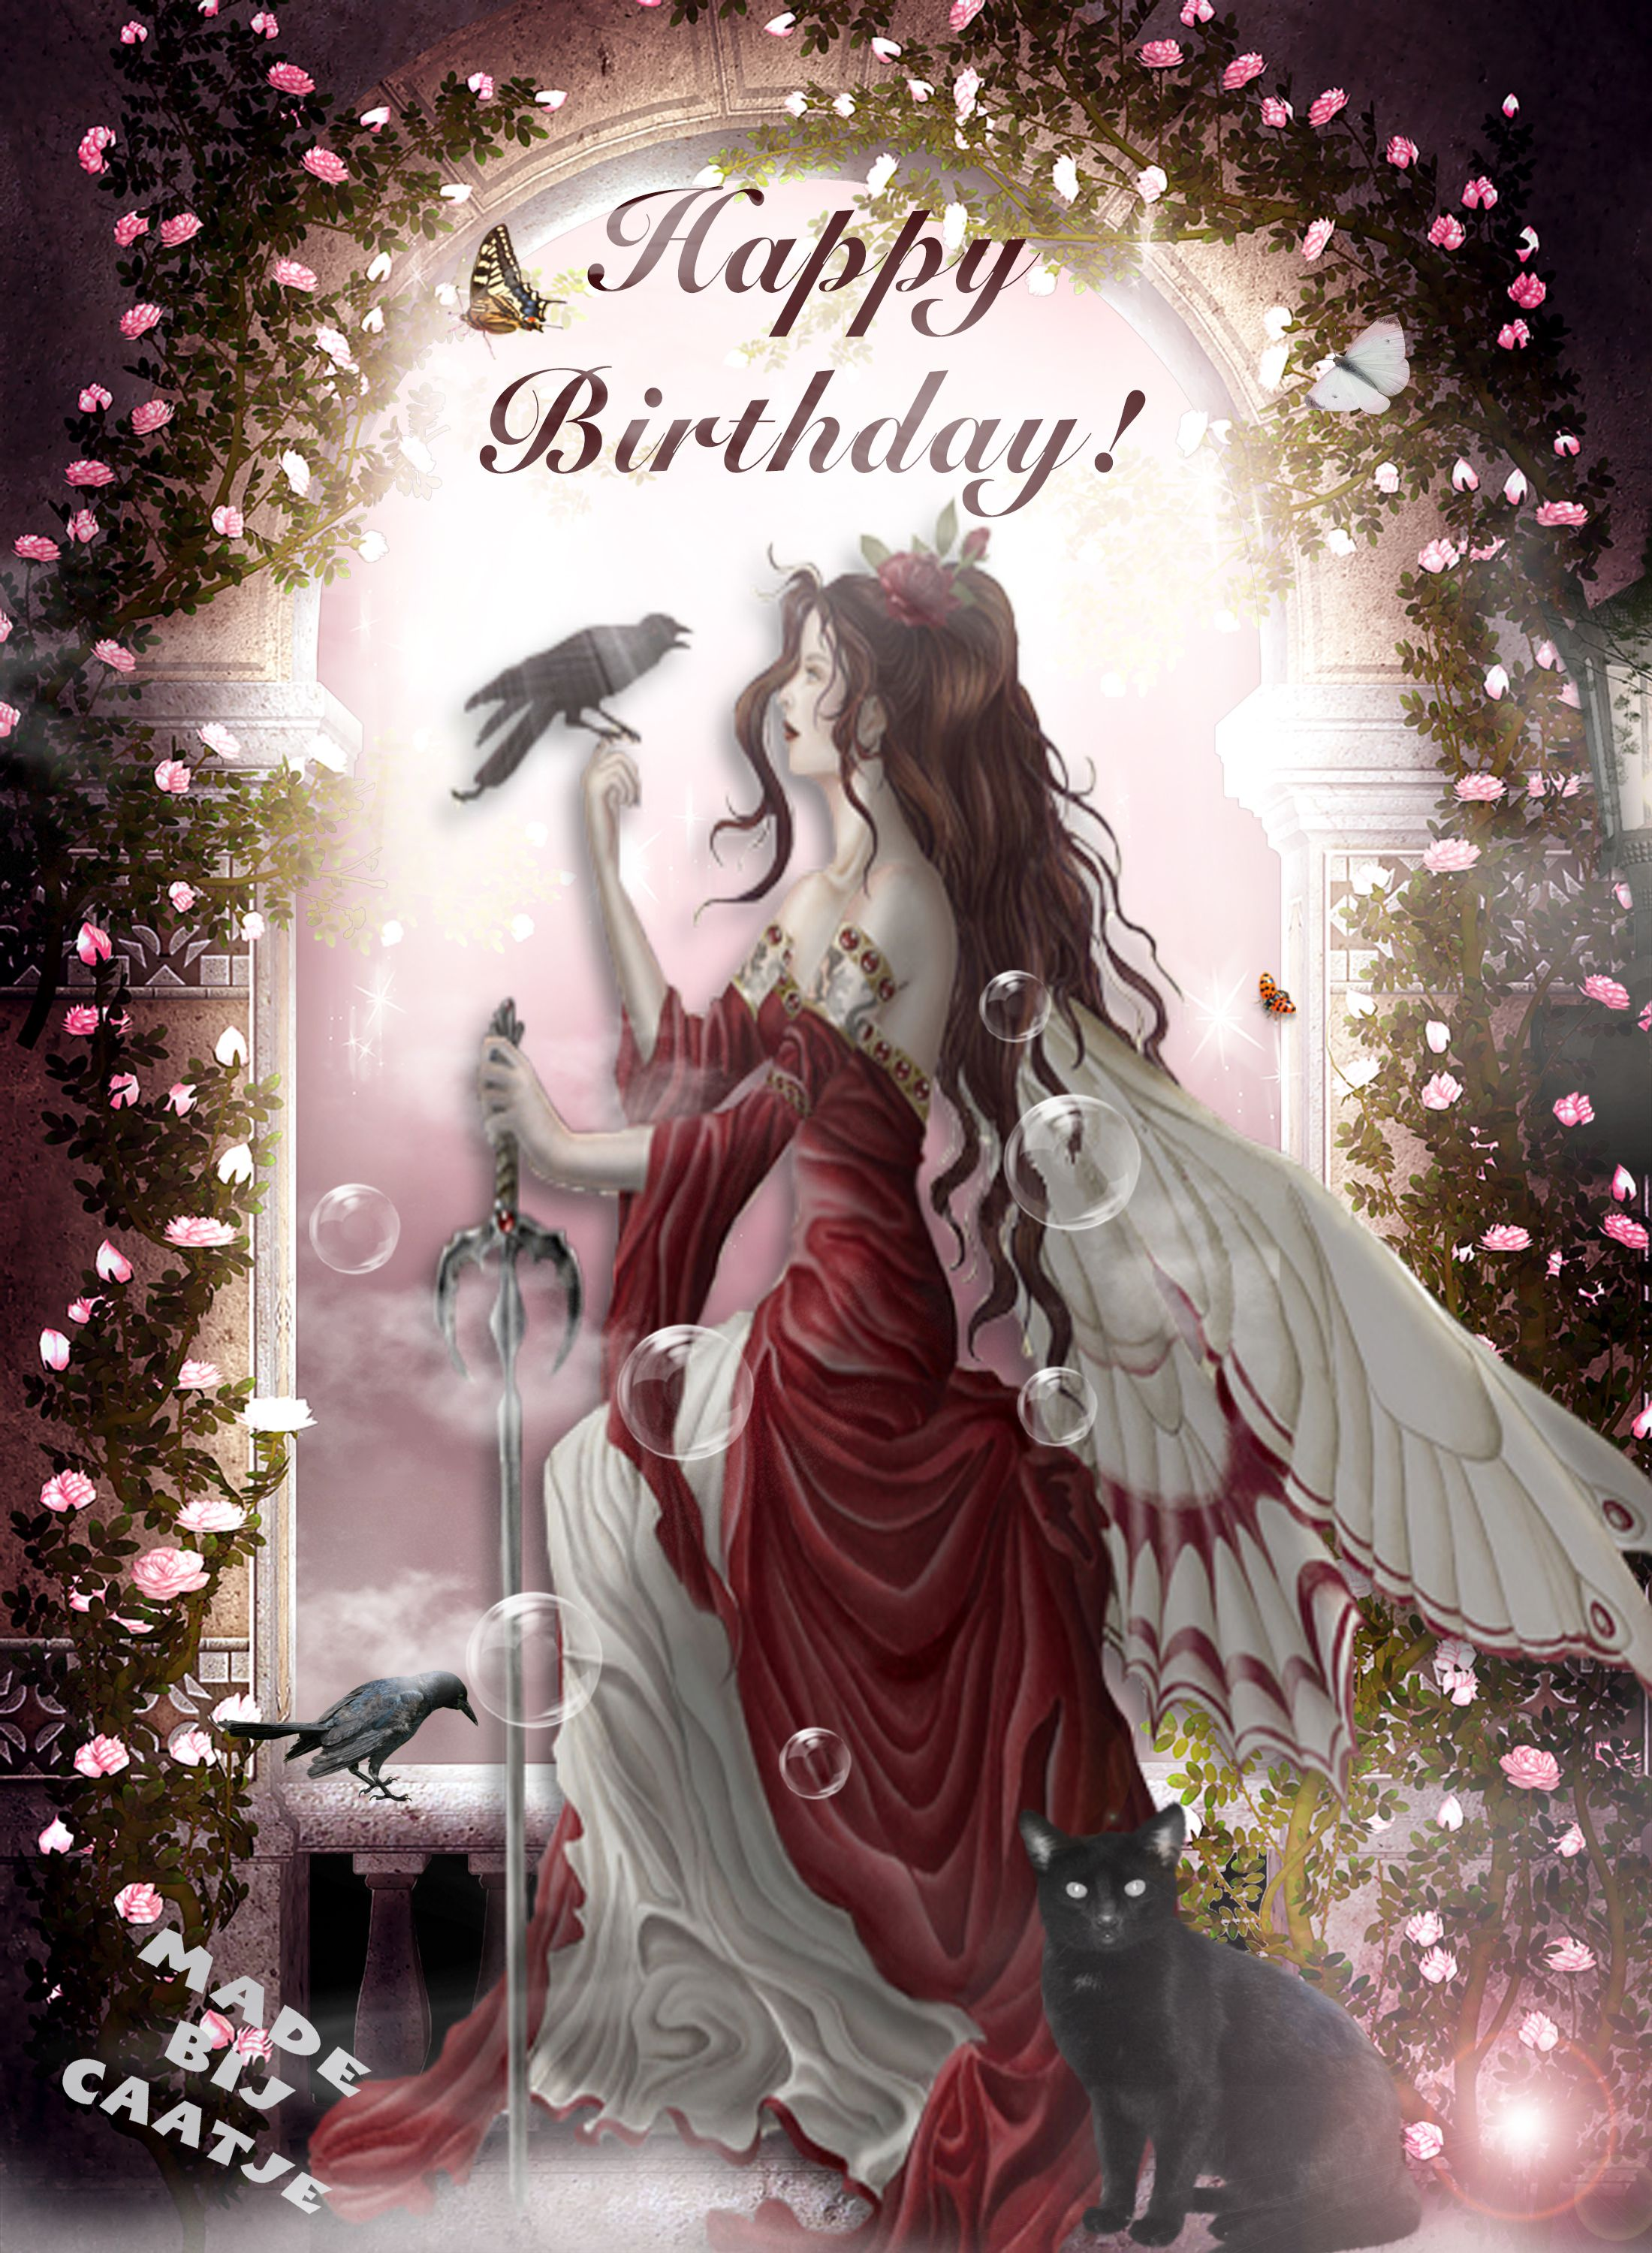 happy birthday fairy images ; 277ea985eac998850508c147020bf57f